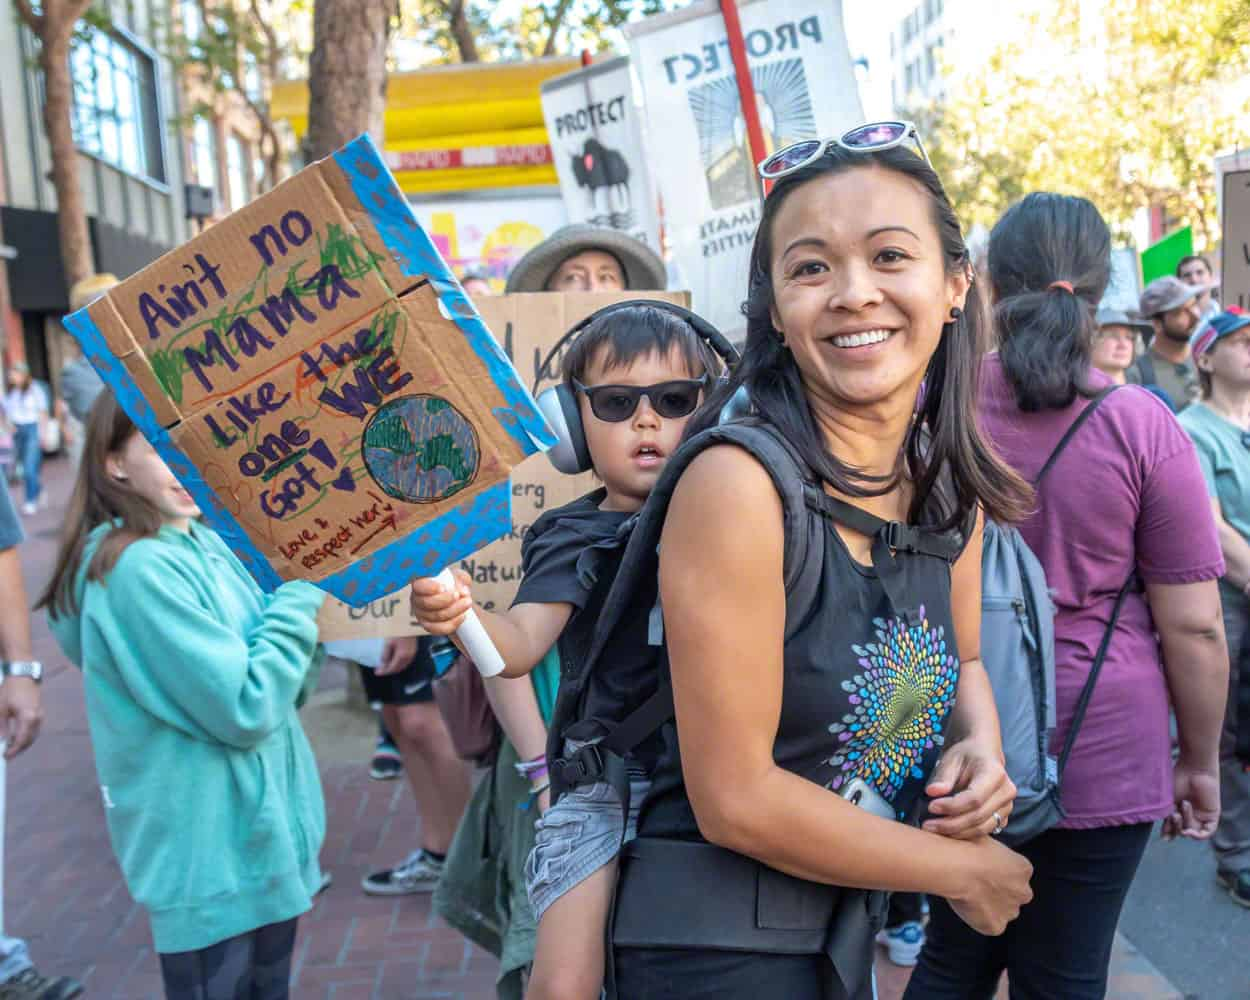 A mother carries a small child on her back at the Climate Strike March